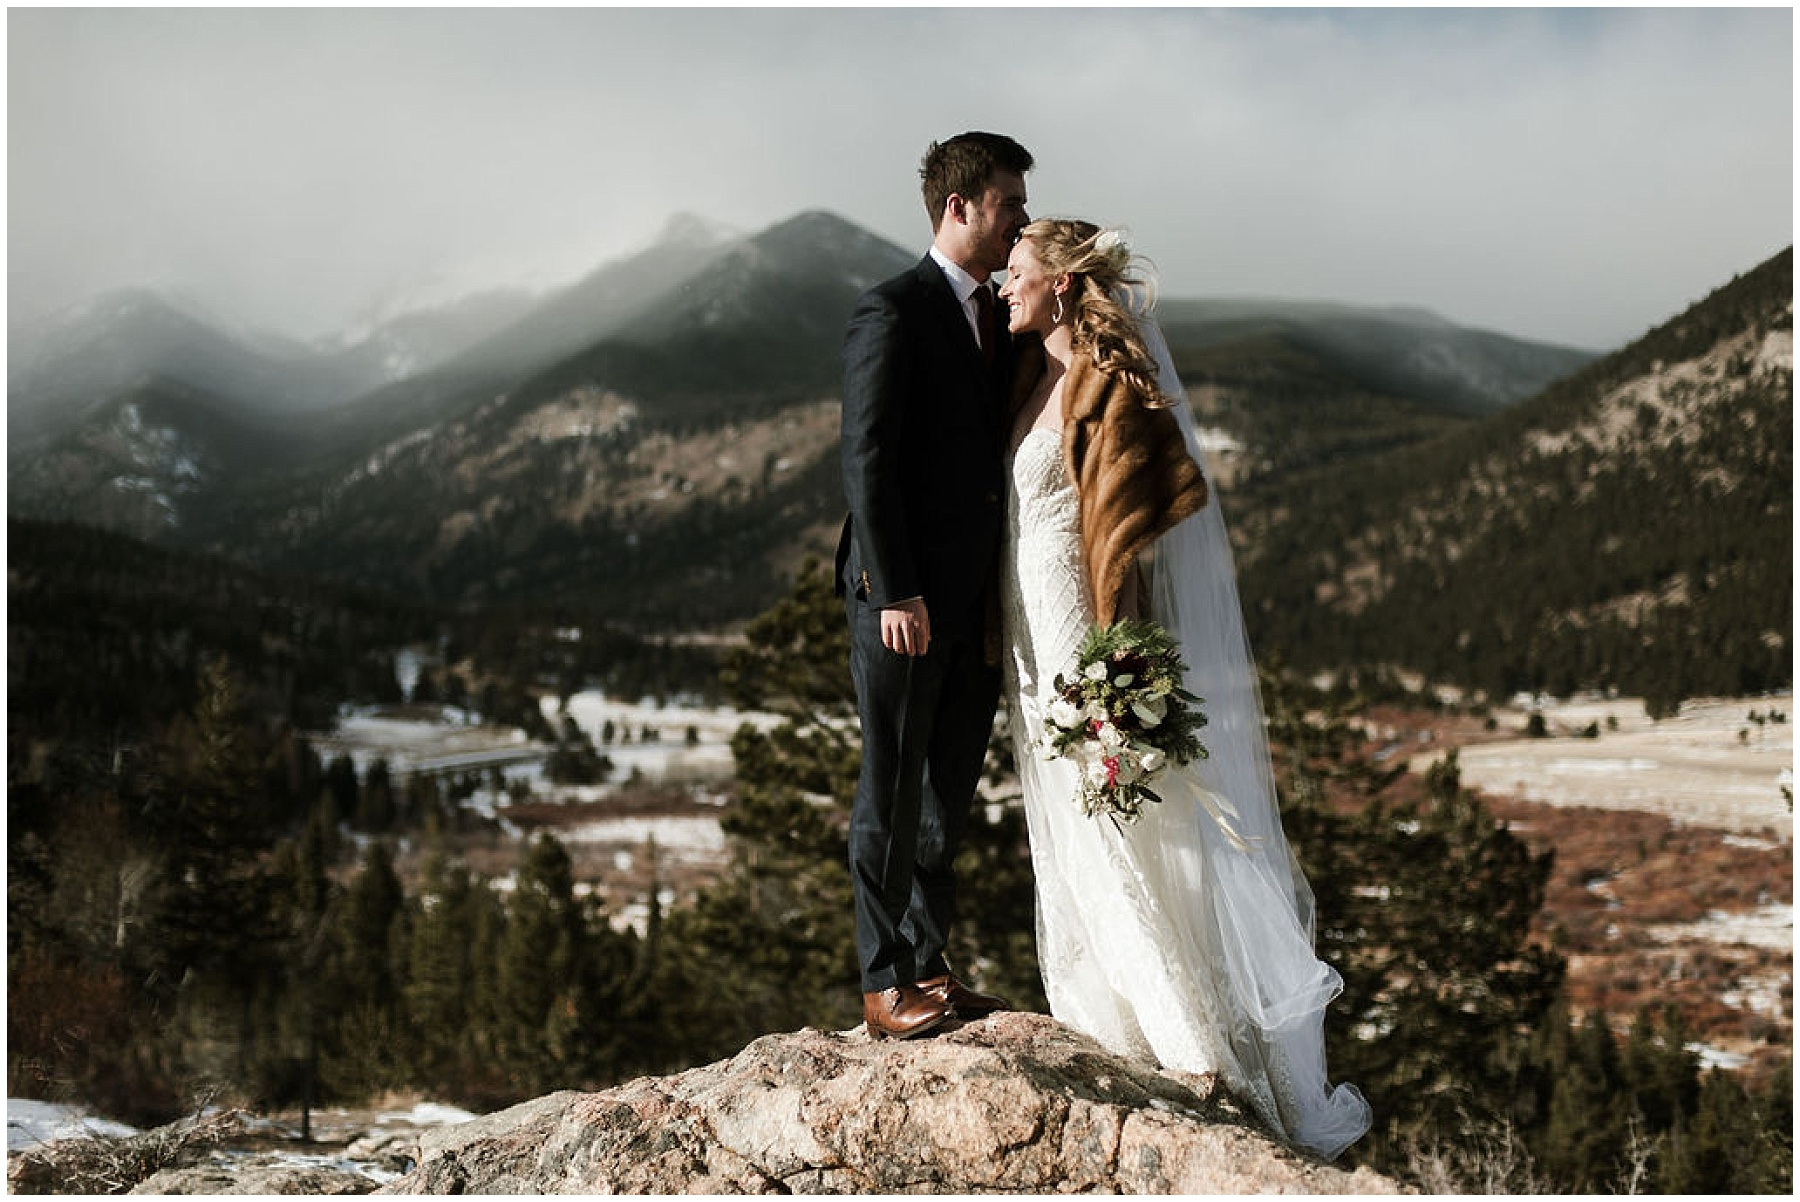 Katesalleyphotography-195_Haley and Dan get married in Estes Park.jpg